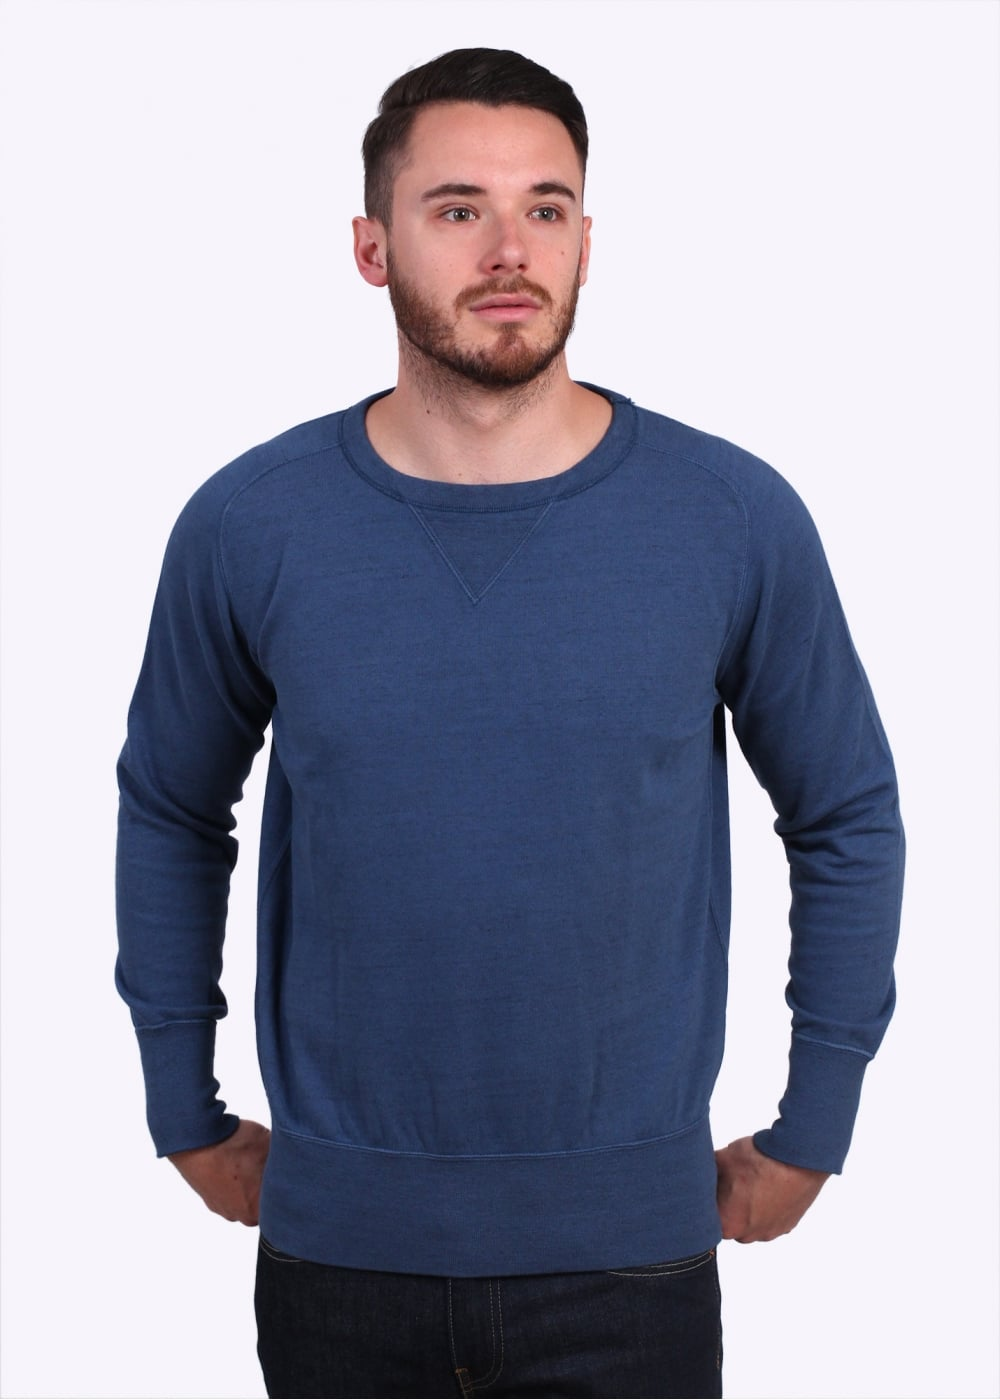 f28edcff Levi's Vintage Clothing Bay Meadows Sweatshirt - Blue Note